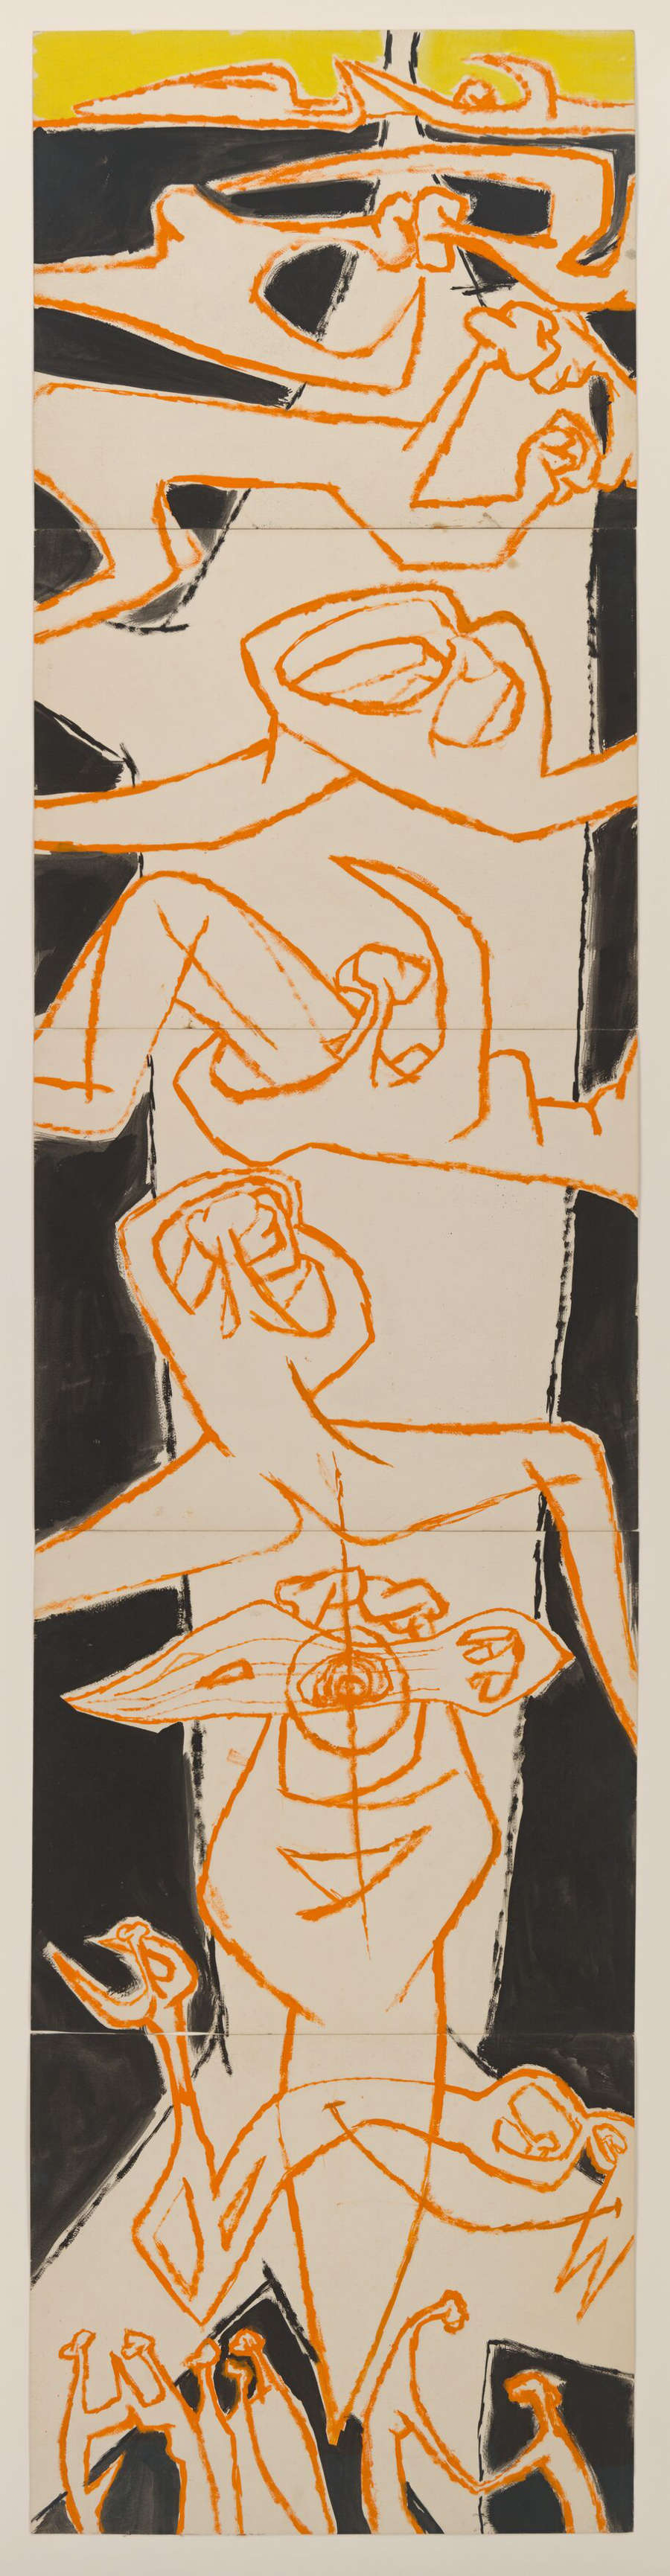 Luchita Hurtado, Untitled, c. 1954. Oil on paper, 5 parts Unique 229.2 x 54.9 cm / 90 1/4 x 21 5/8 inches © Luchita Hurtado. Courtesy the artist and Hauser & Wirth. Photo: Jeff McLane